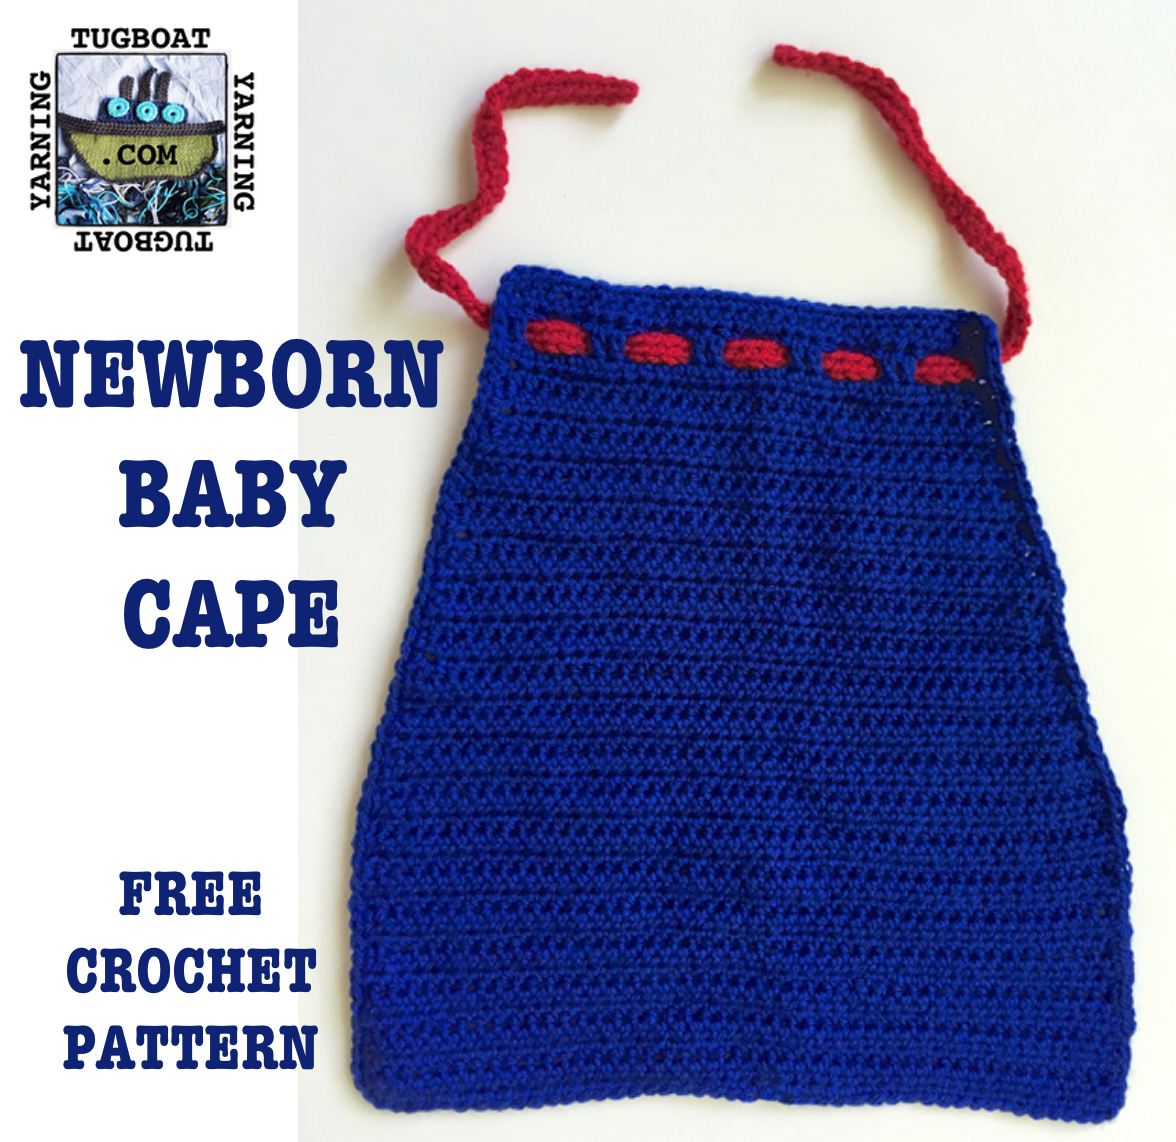 Free Crochet Pattern Toddler Cape : Baby Cape Crochet Pattern [S.O.P. Series] ? tugboat yarning